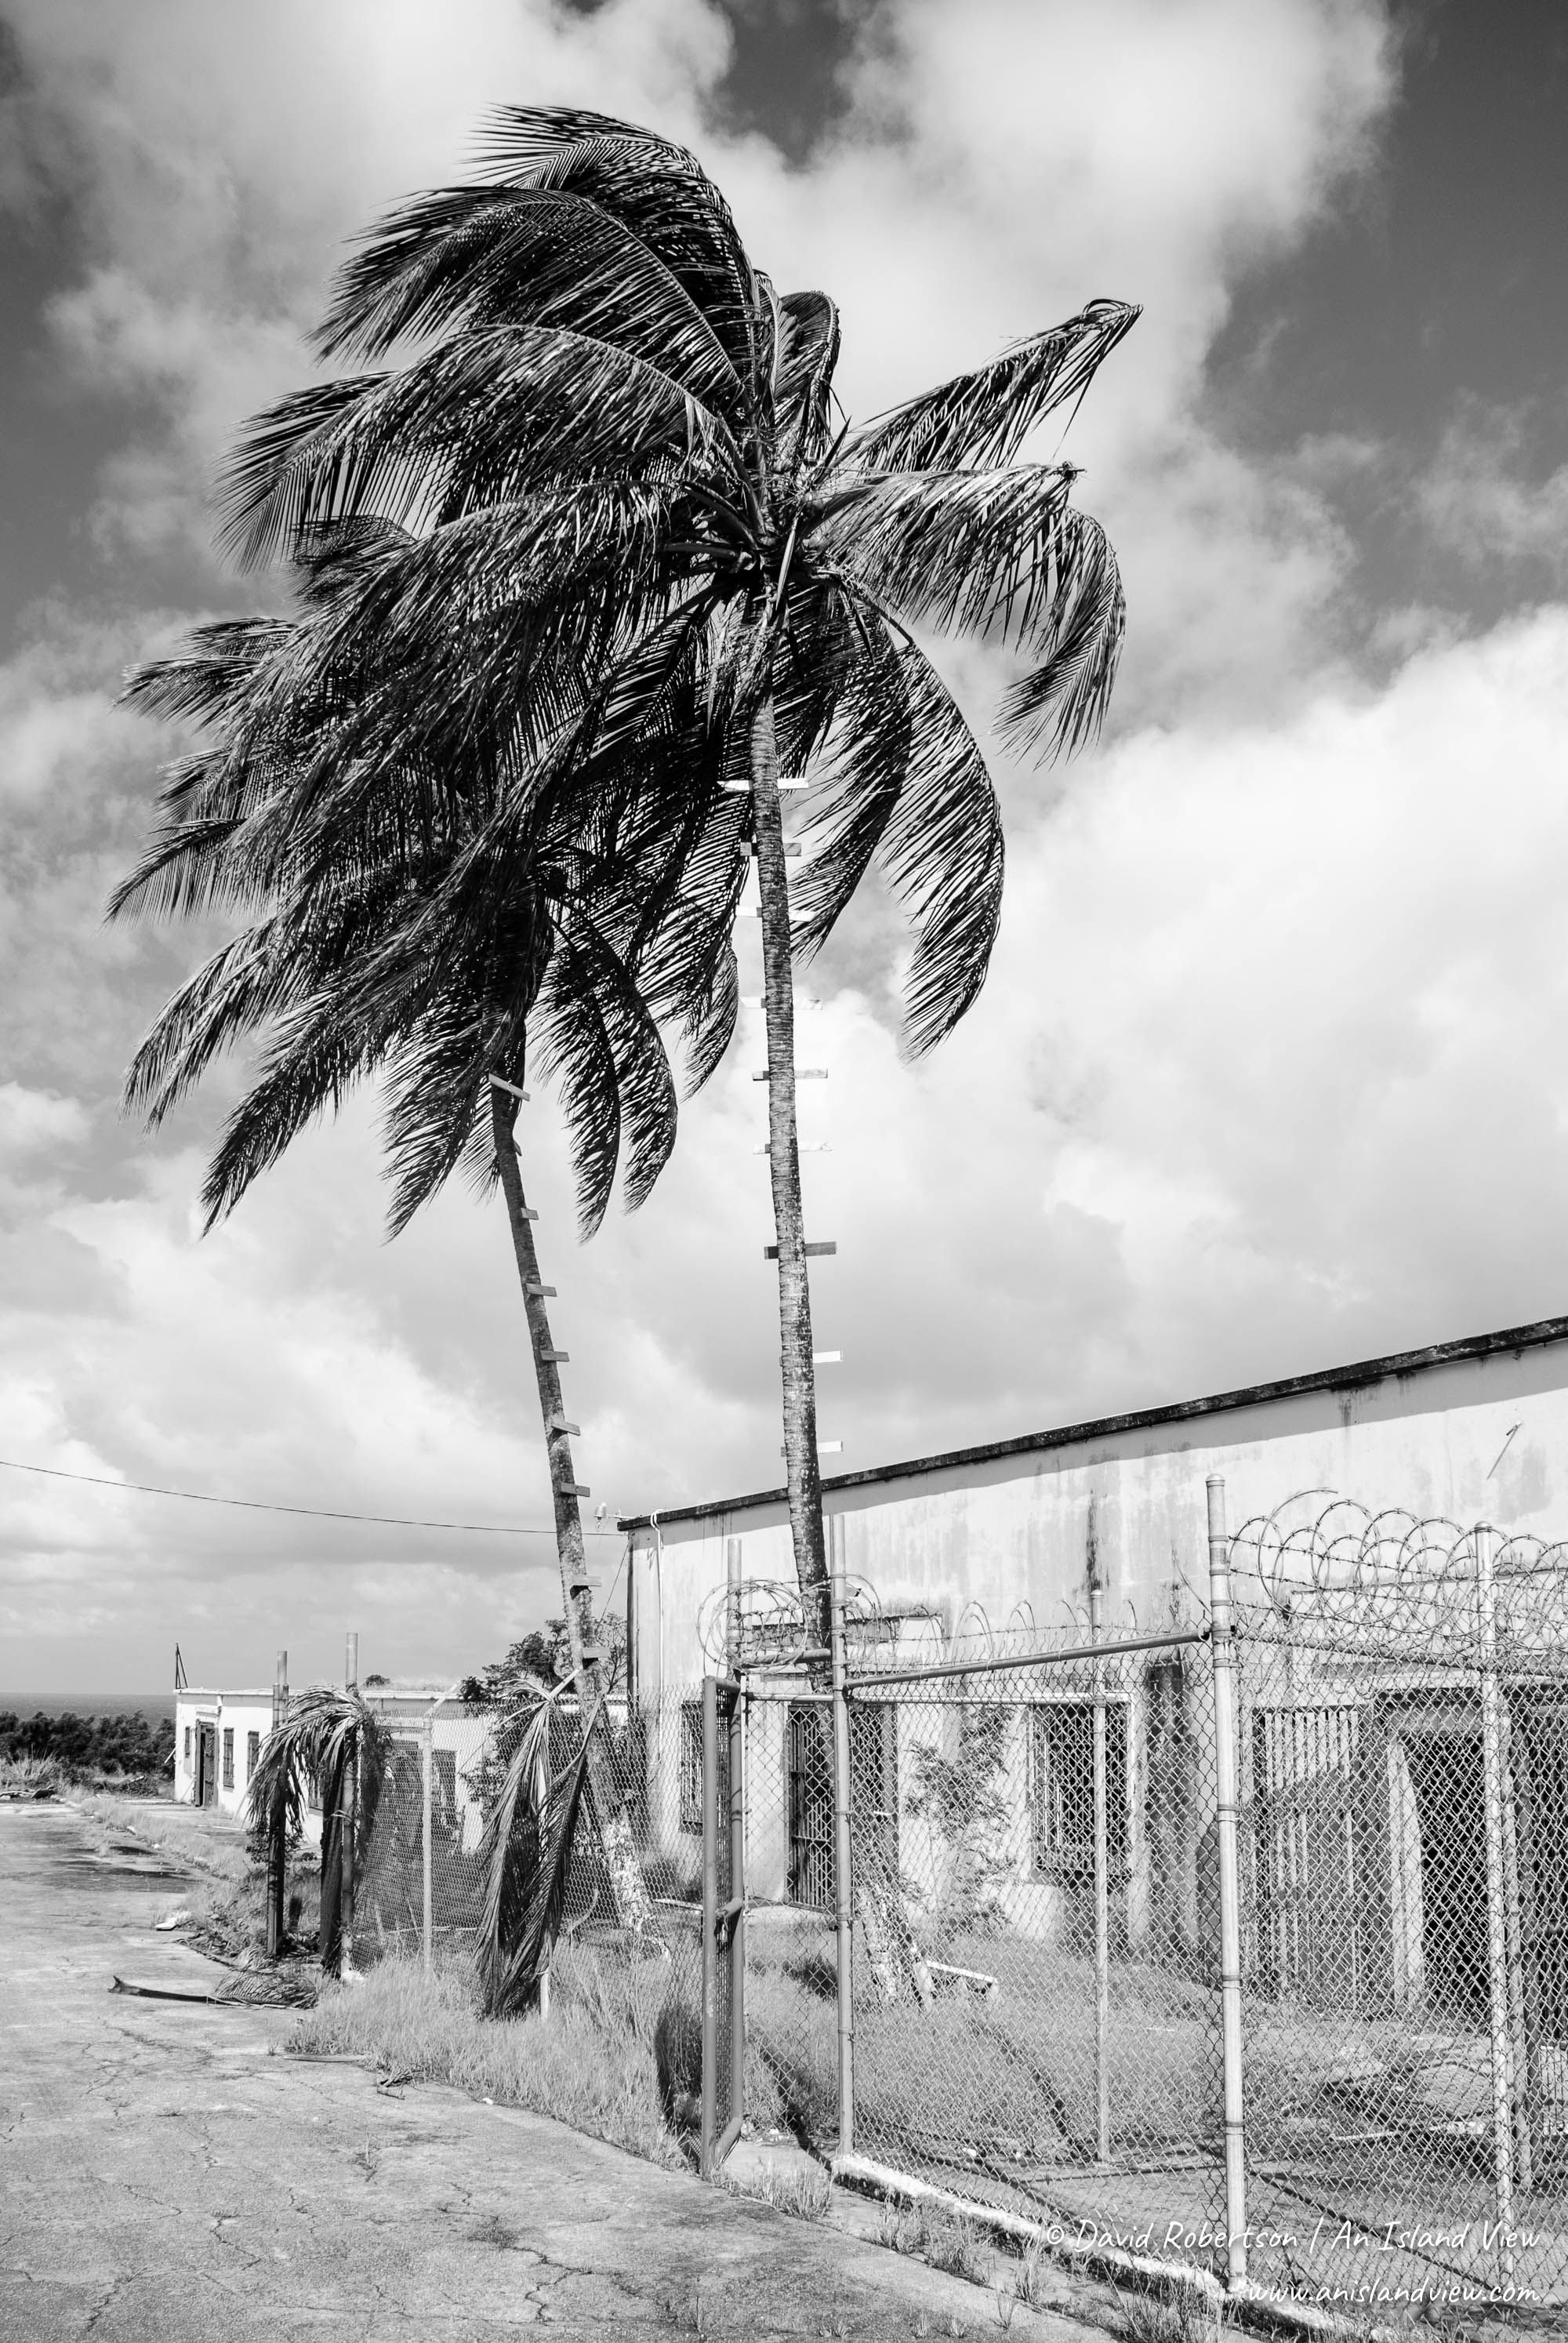 Prison buildings and palm trees.